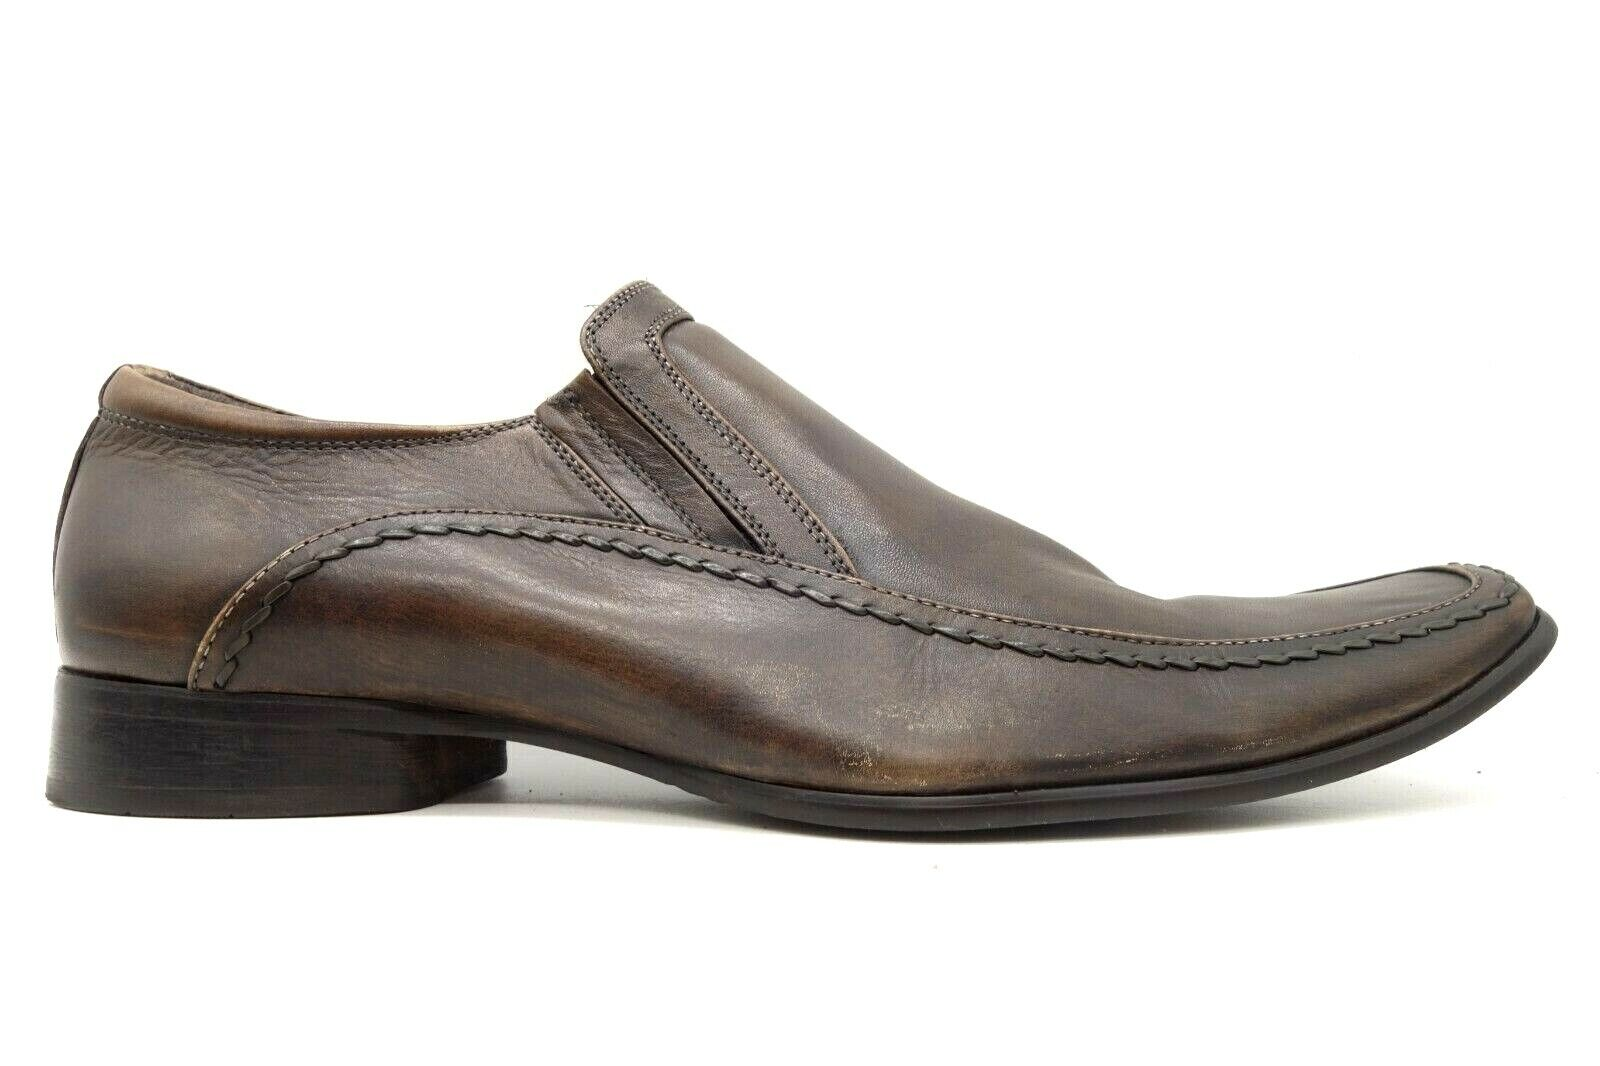 Kenneth Cole Reaction Key Note Brown Leather Slip On Loafers Shoes Men's 12 M